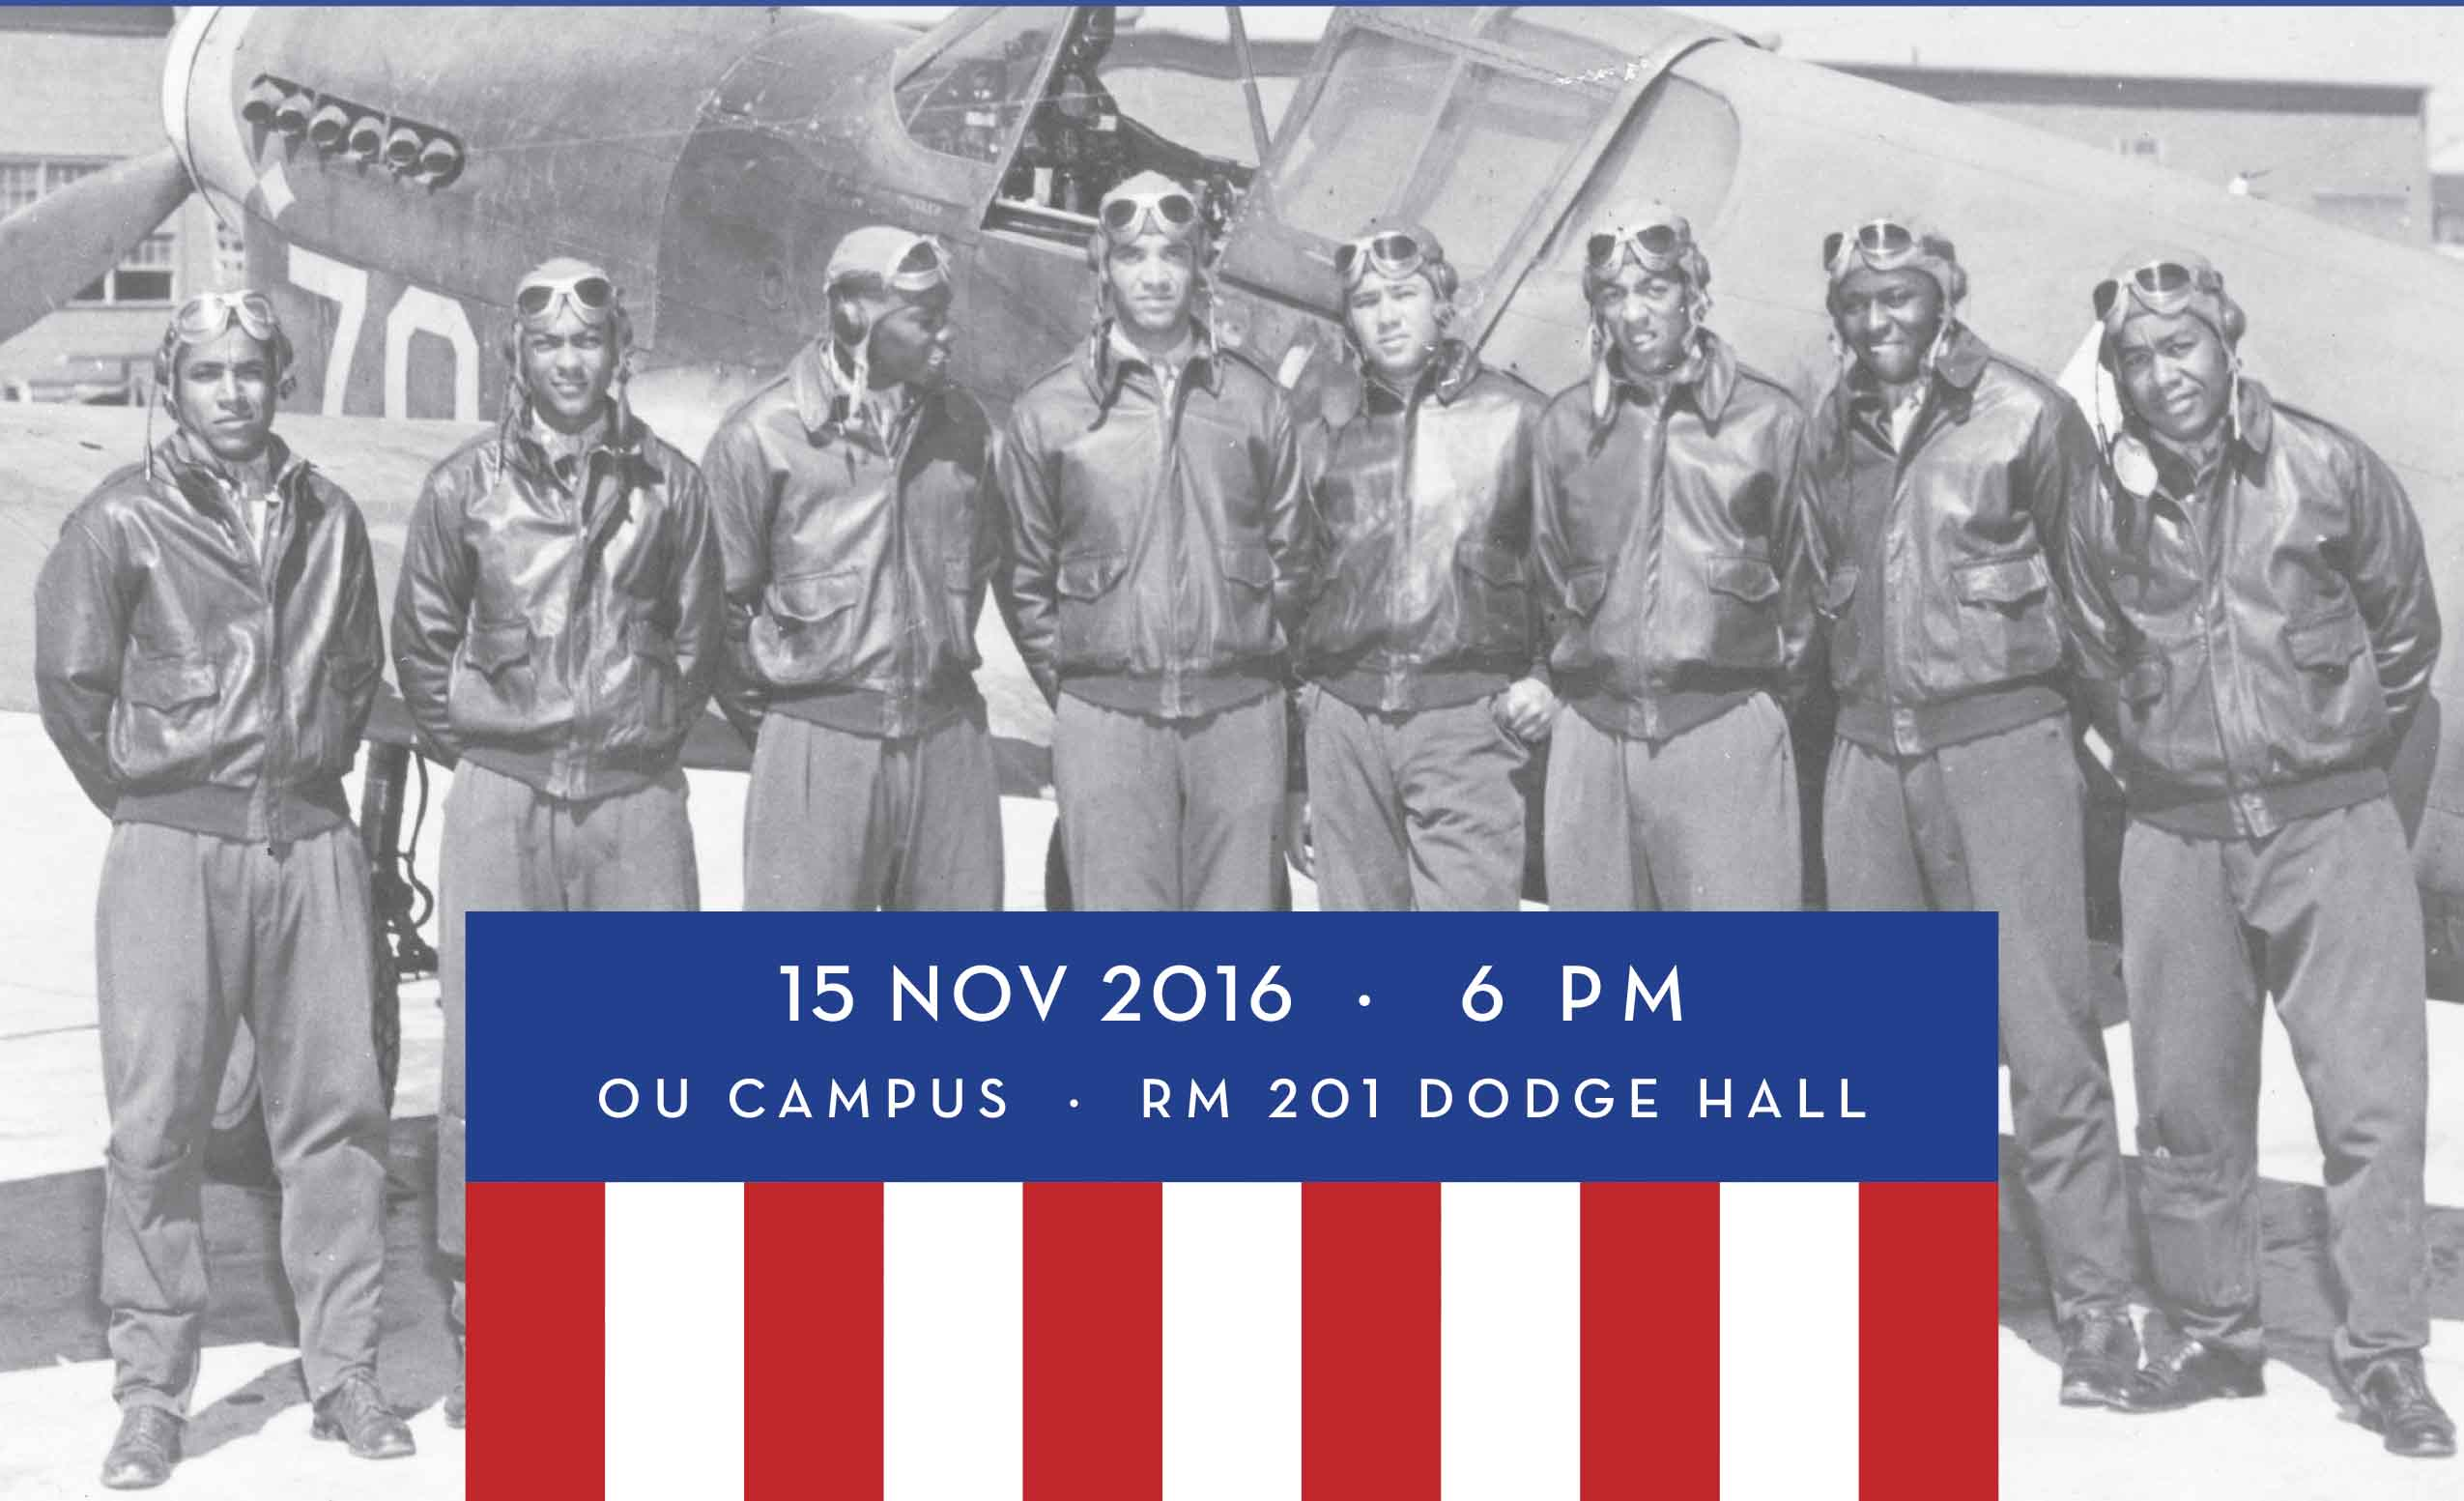 The film screening will include free food from Buffalo Wild Wings and a Q-and-A from the film's director and one of the Tuskegee Airmen.